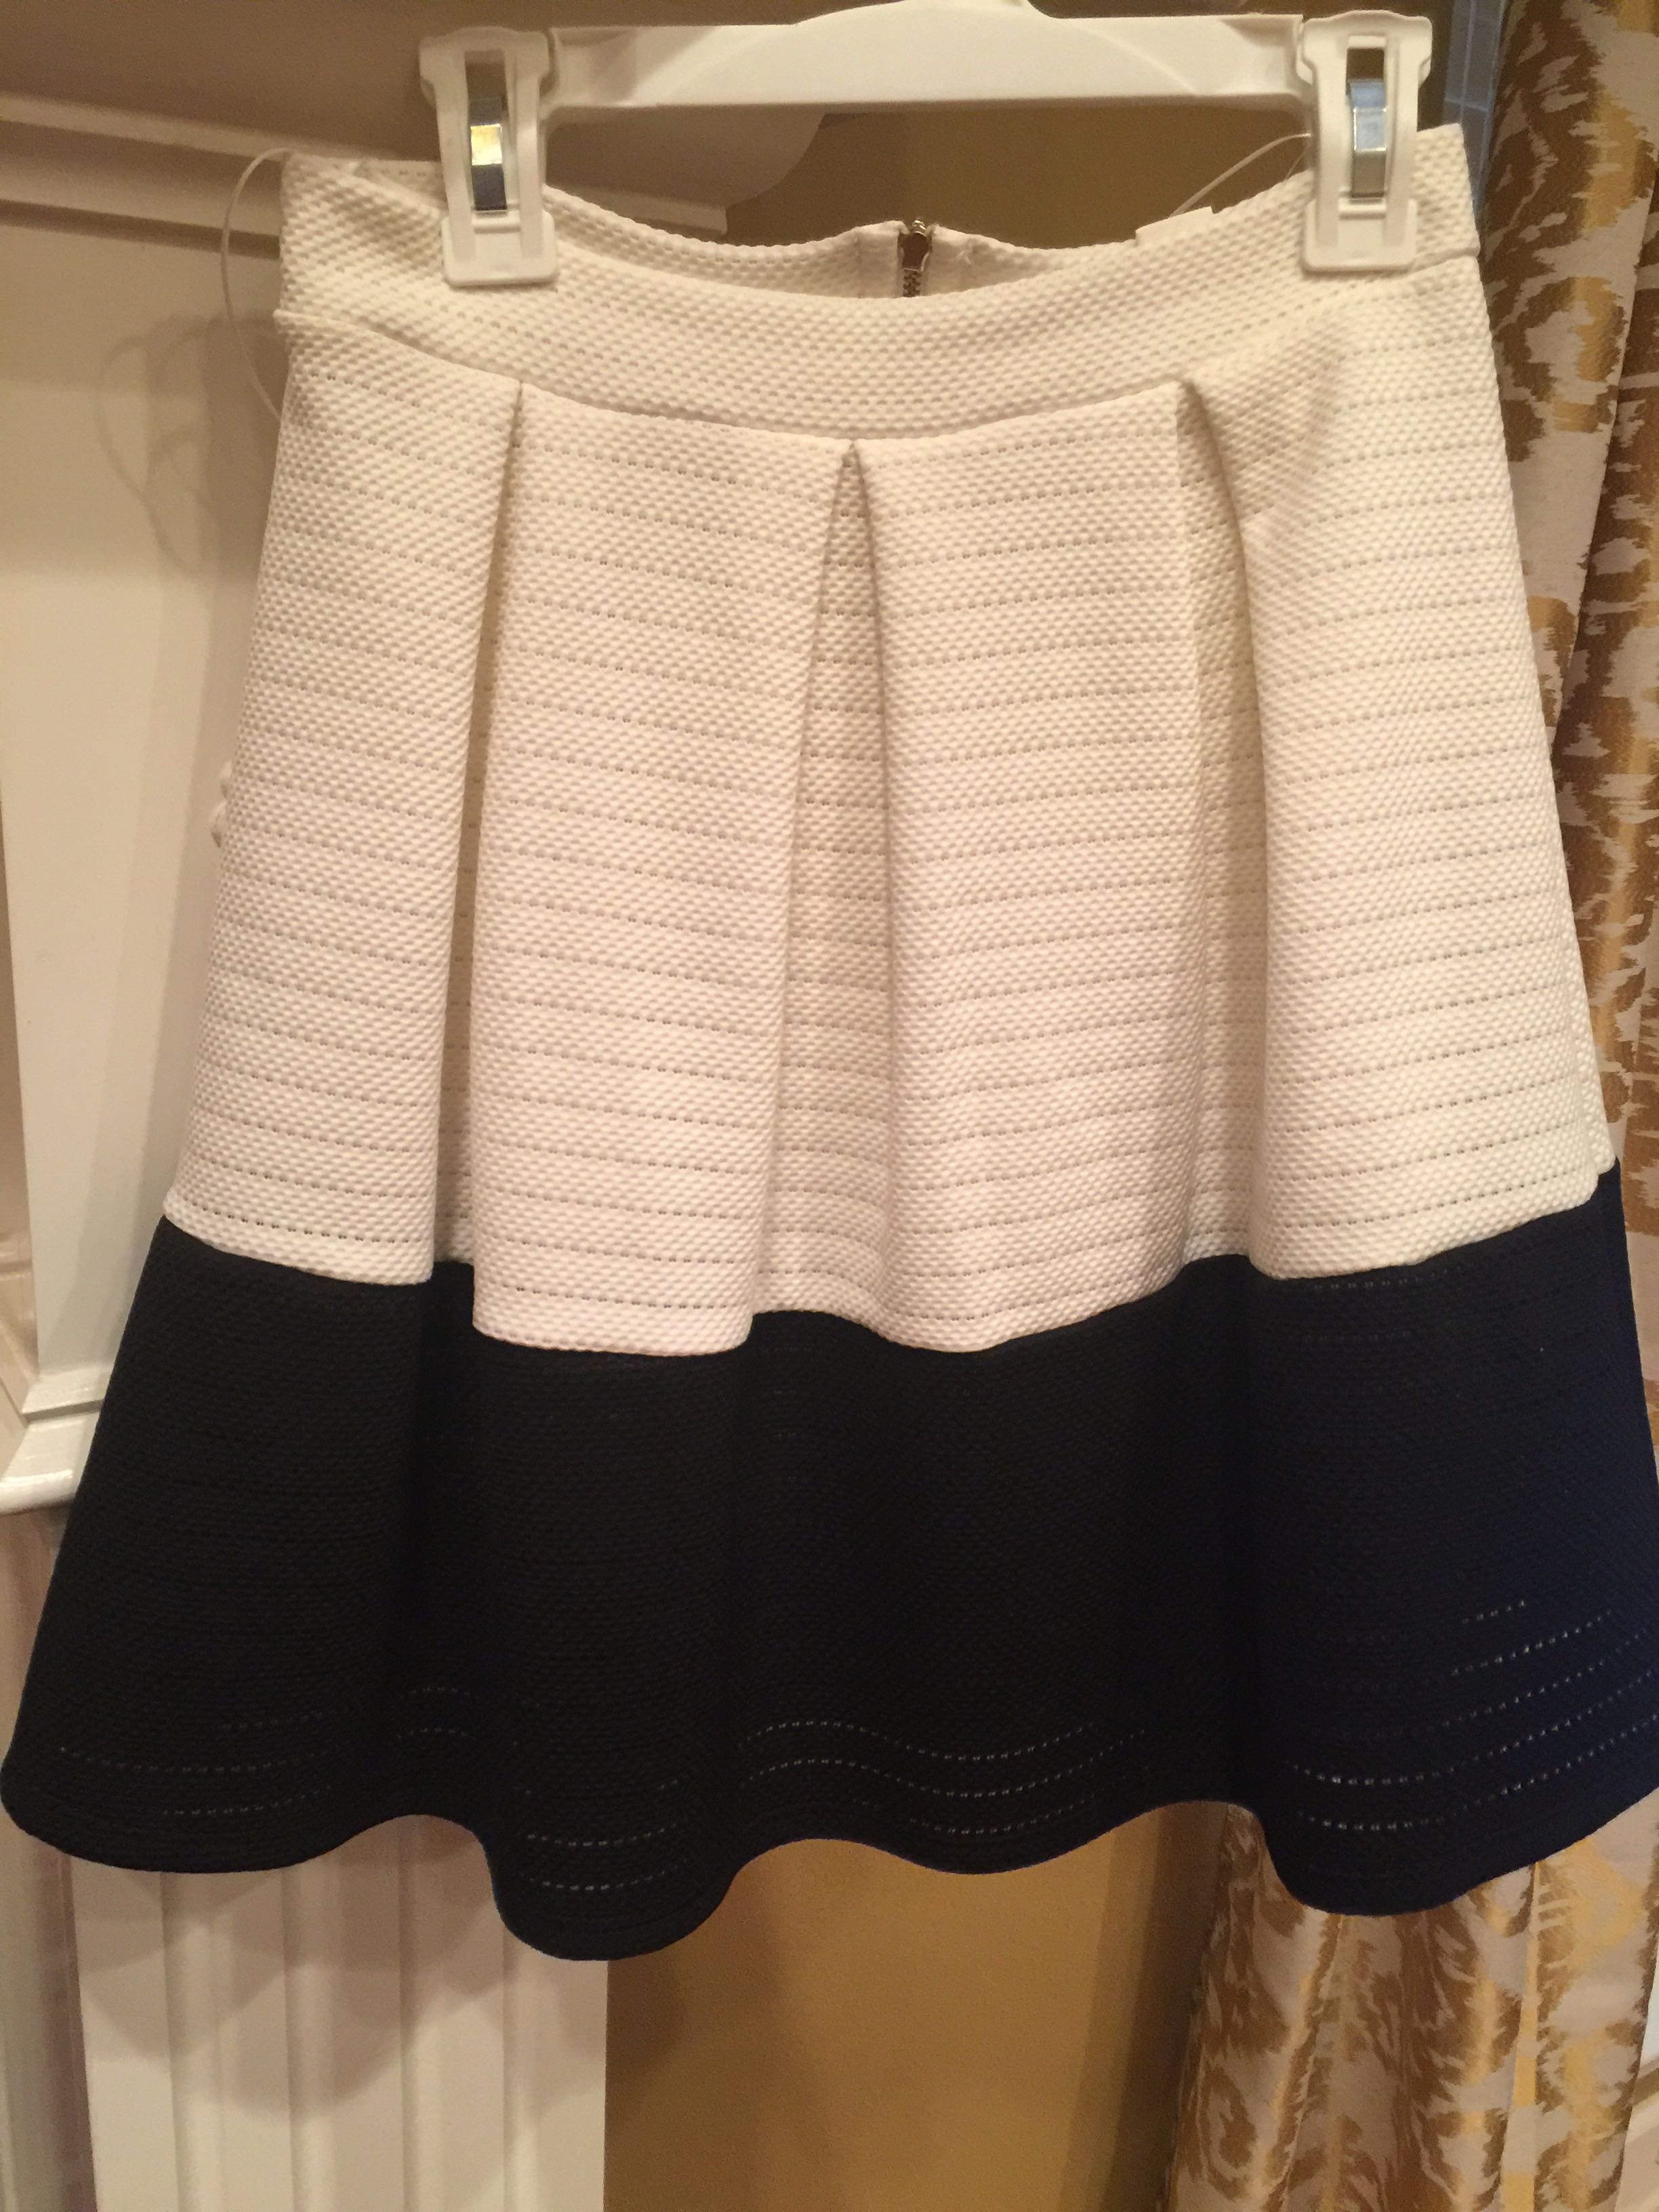 Small skirt from Francesca's.